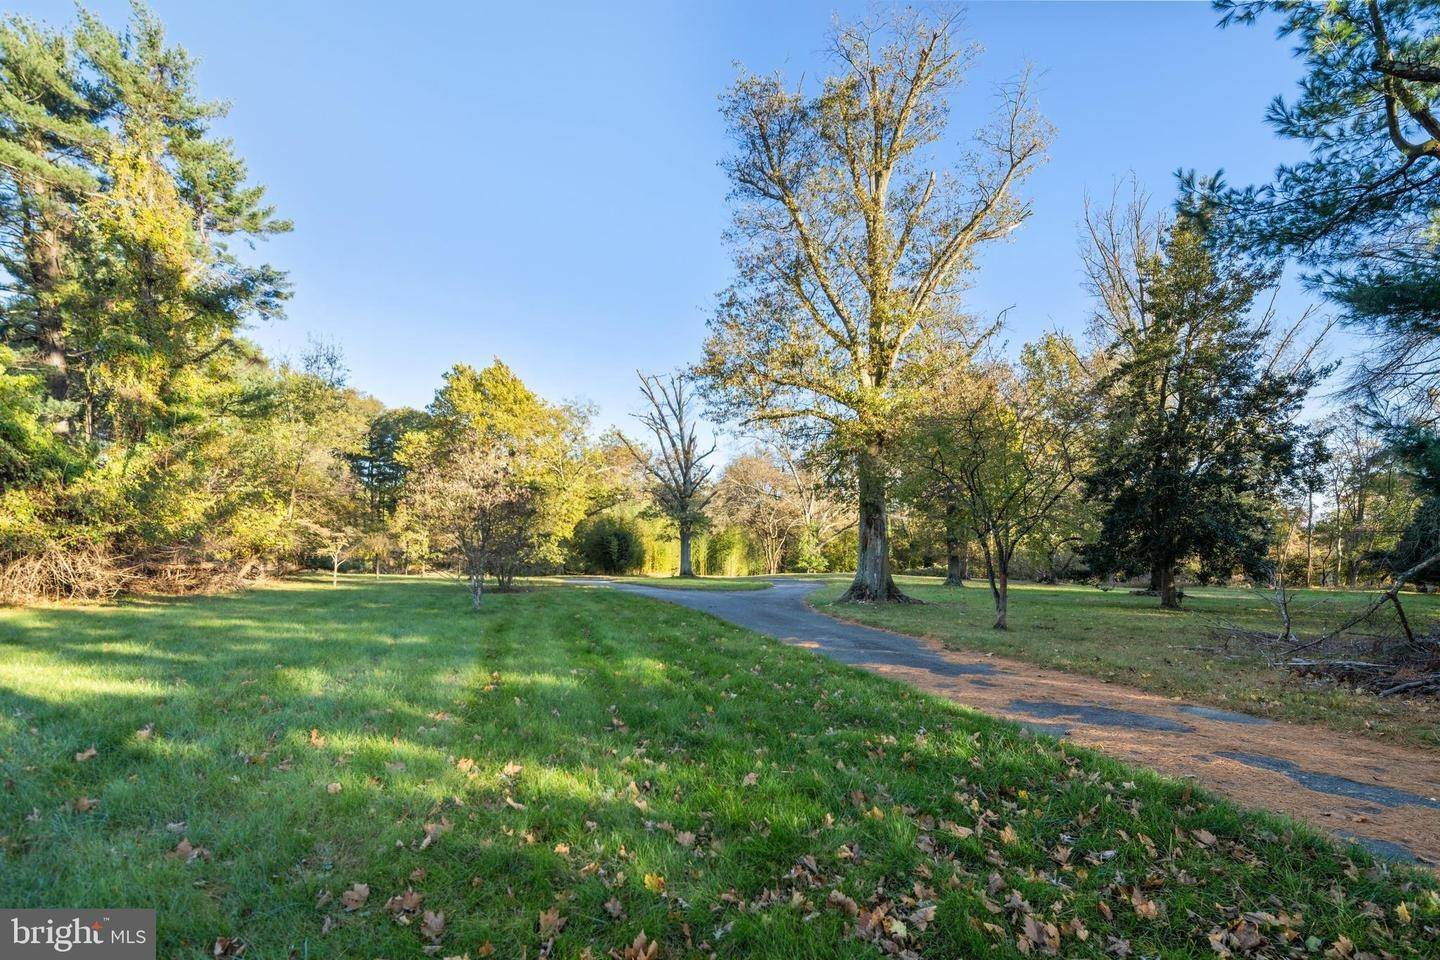 7. Land for Sale at 10 LANE OF ACRES Haddonfield, New Jersey 08033 United States